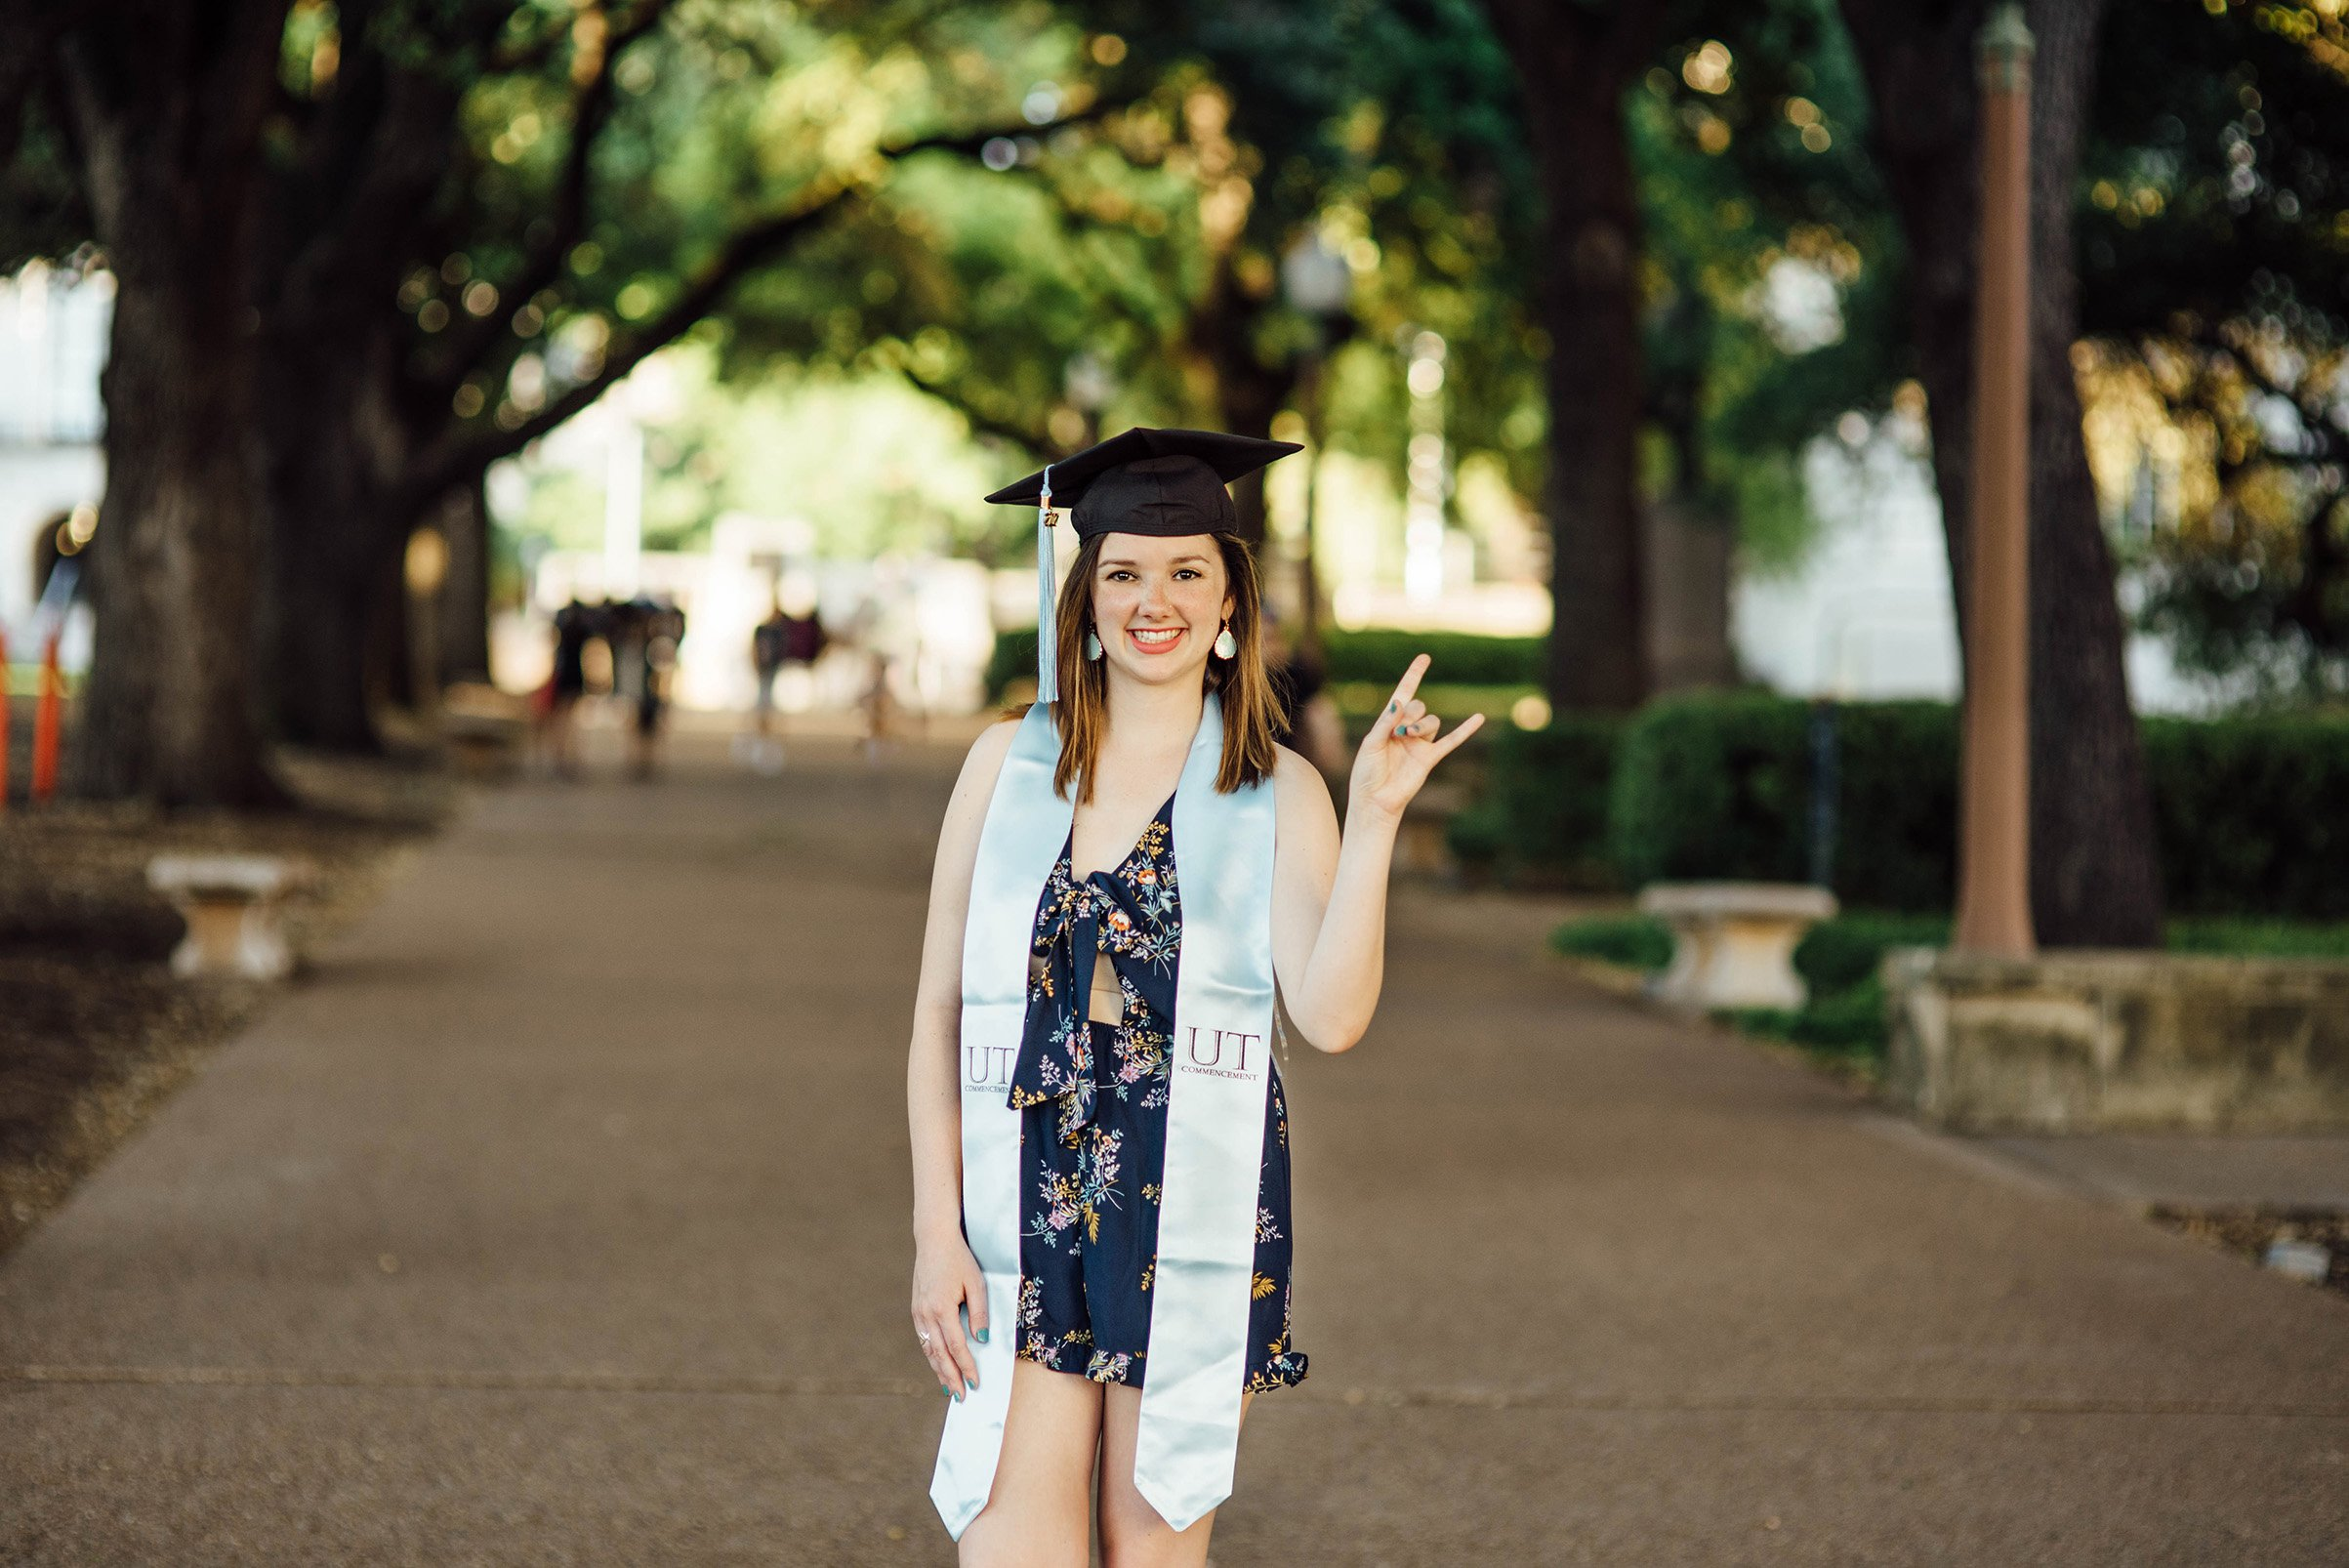 UT Senior portraits on the main mall with cap and gown